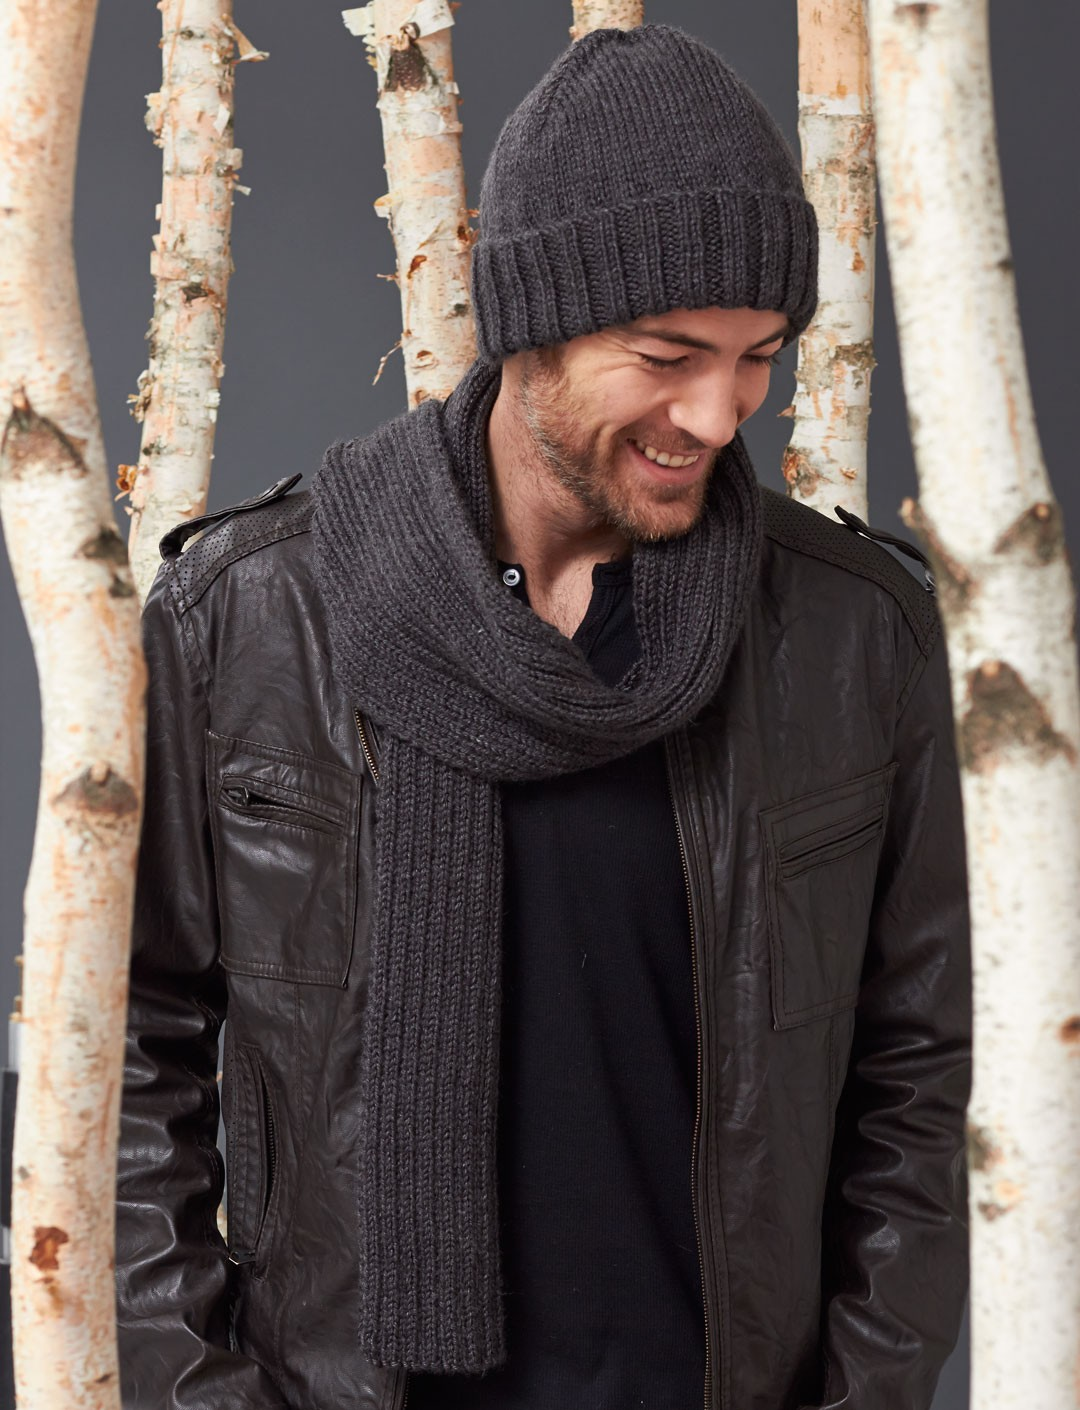 Knitting Patterns Scarf And Hat : Caron Mens Basic Hat and Scarf Set, Knit Pattern Yarnspirations